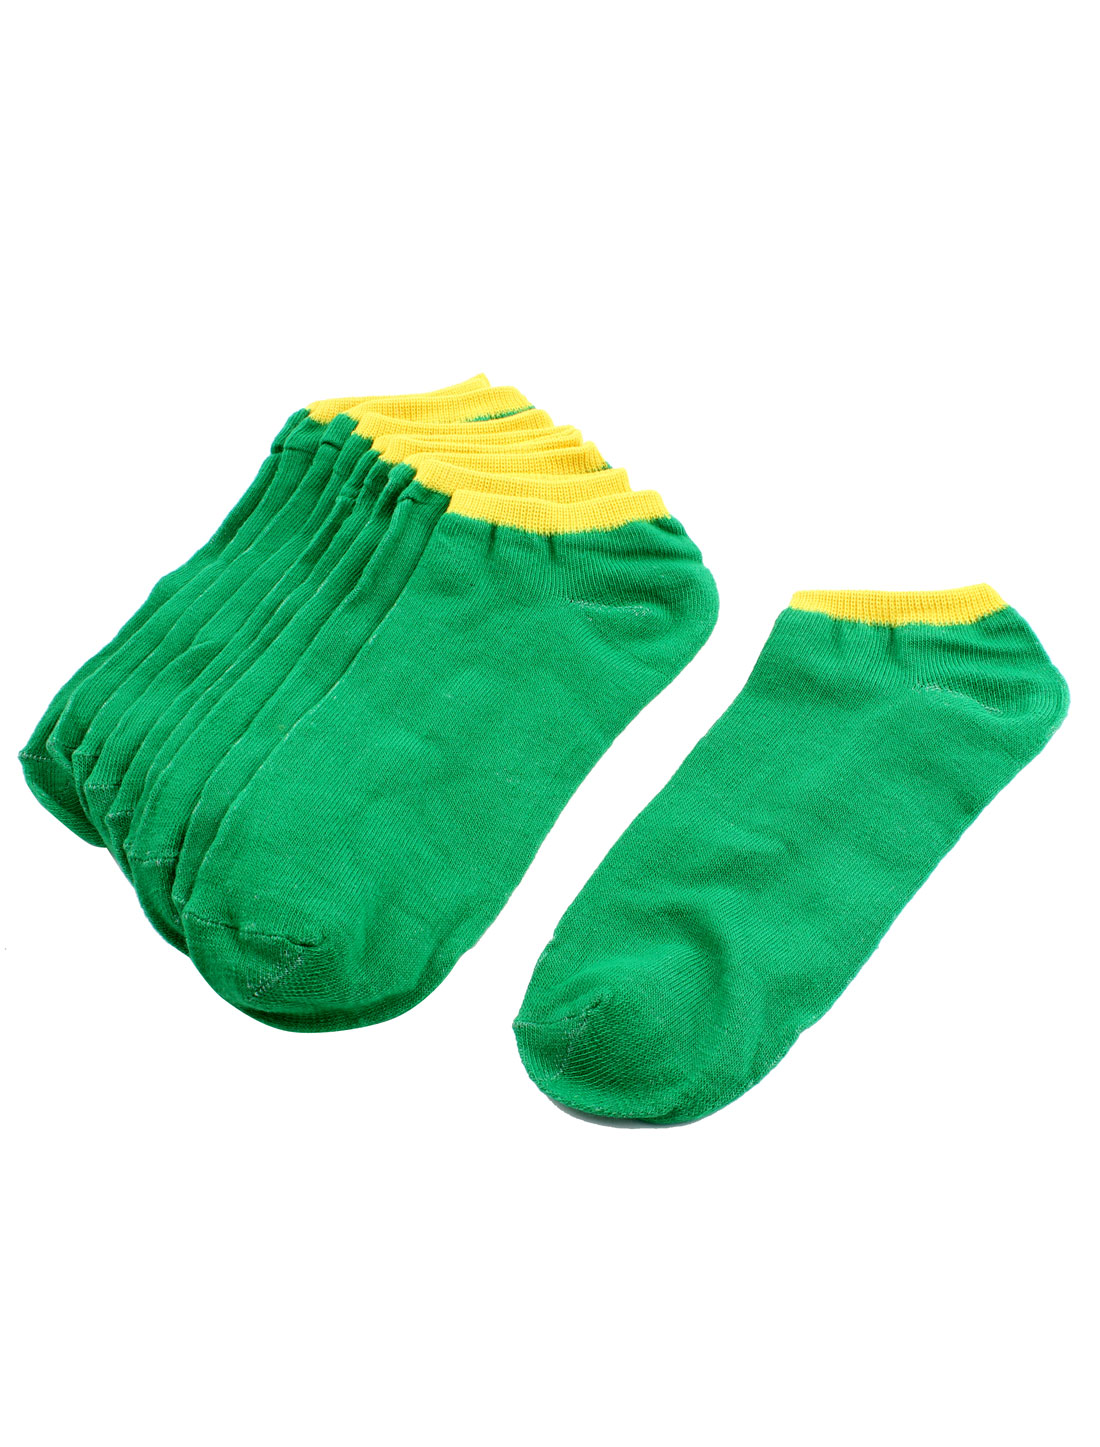 Woman Lady Sports Elastic Cuff Low Cut Short Ankle Socks Green 5 Pairs